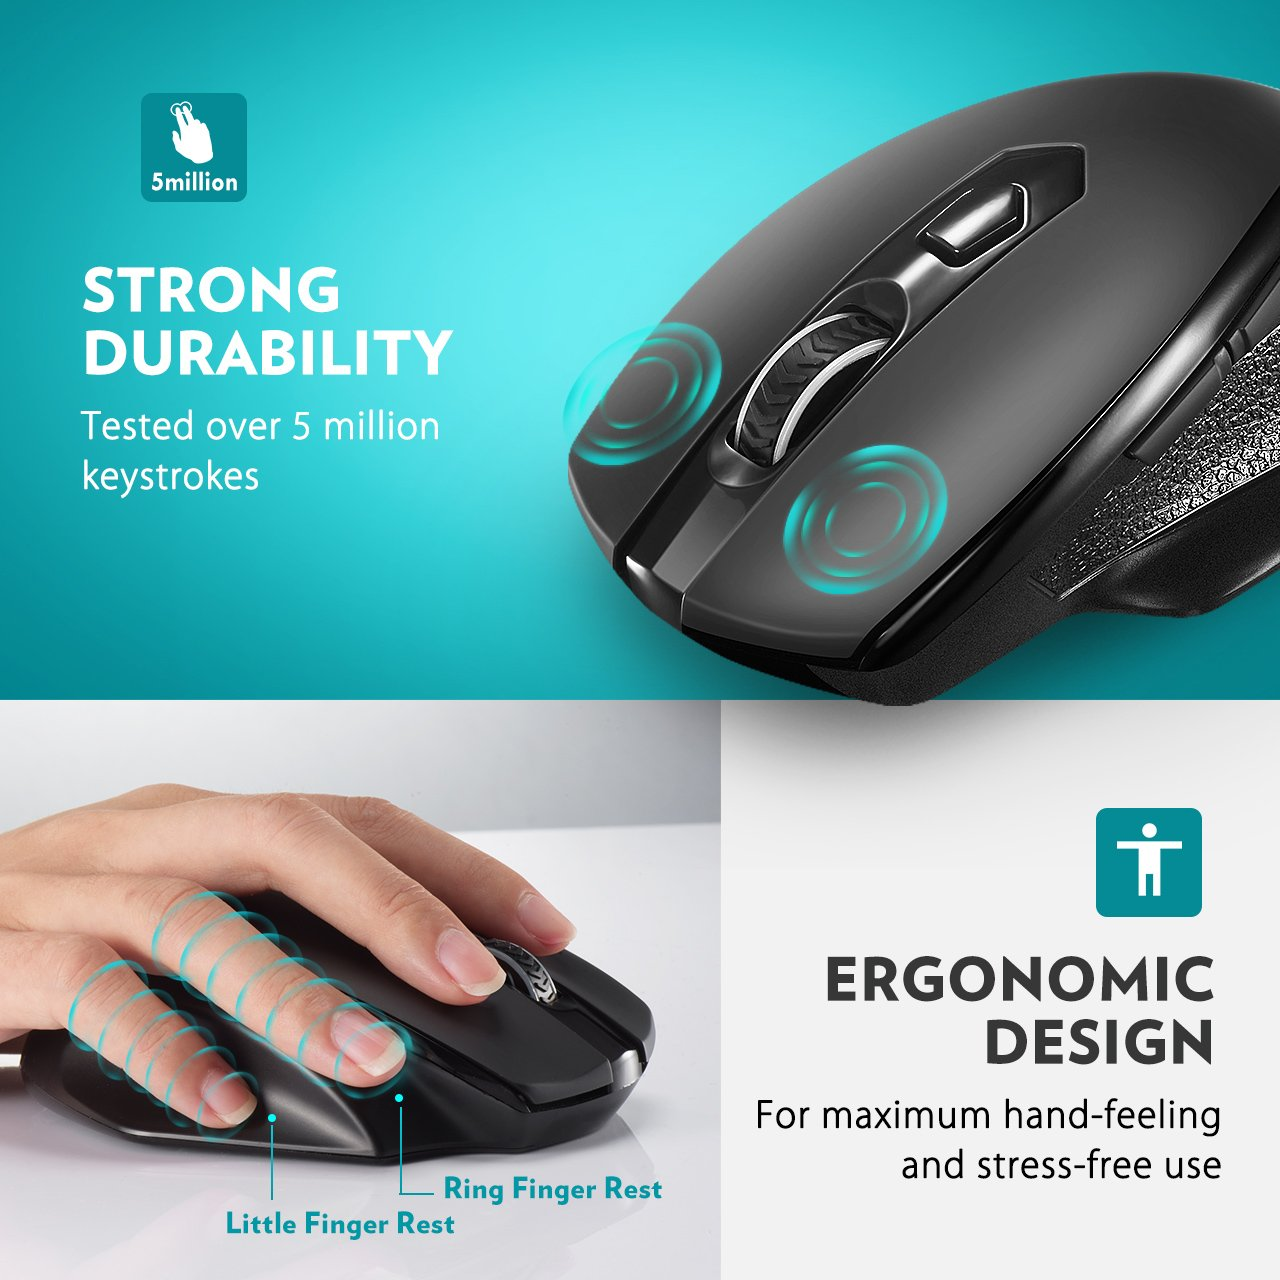 VicTsing Full Size Wireless Mouse with Nano USB Receiver, 5 Adjustable CPI Levels, 6 Buttons for Notebook, PC, Laptop, Computer, Macbook-Black by VicTsing (Image #5)